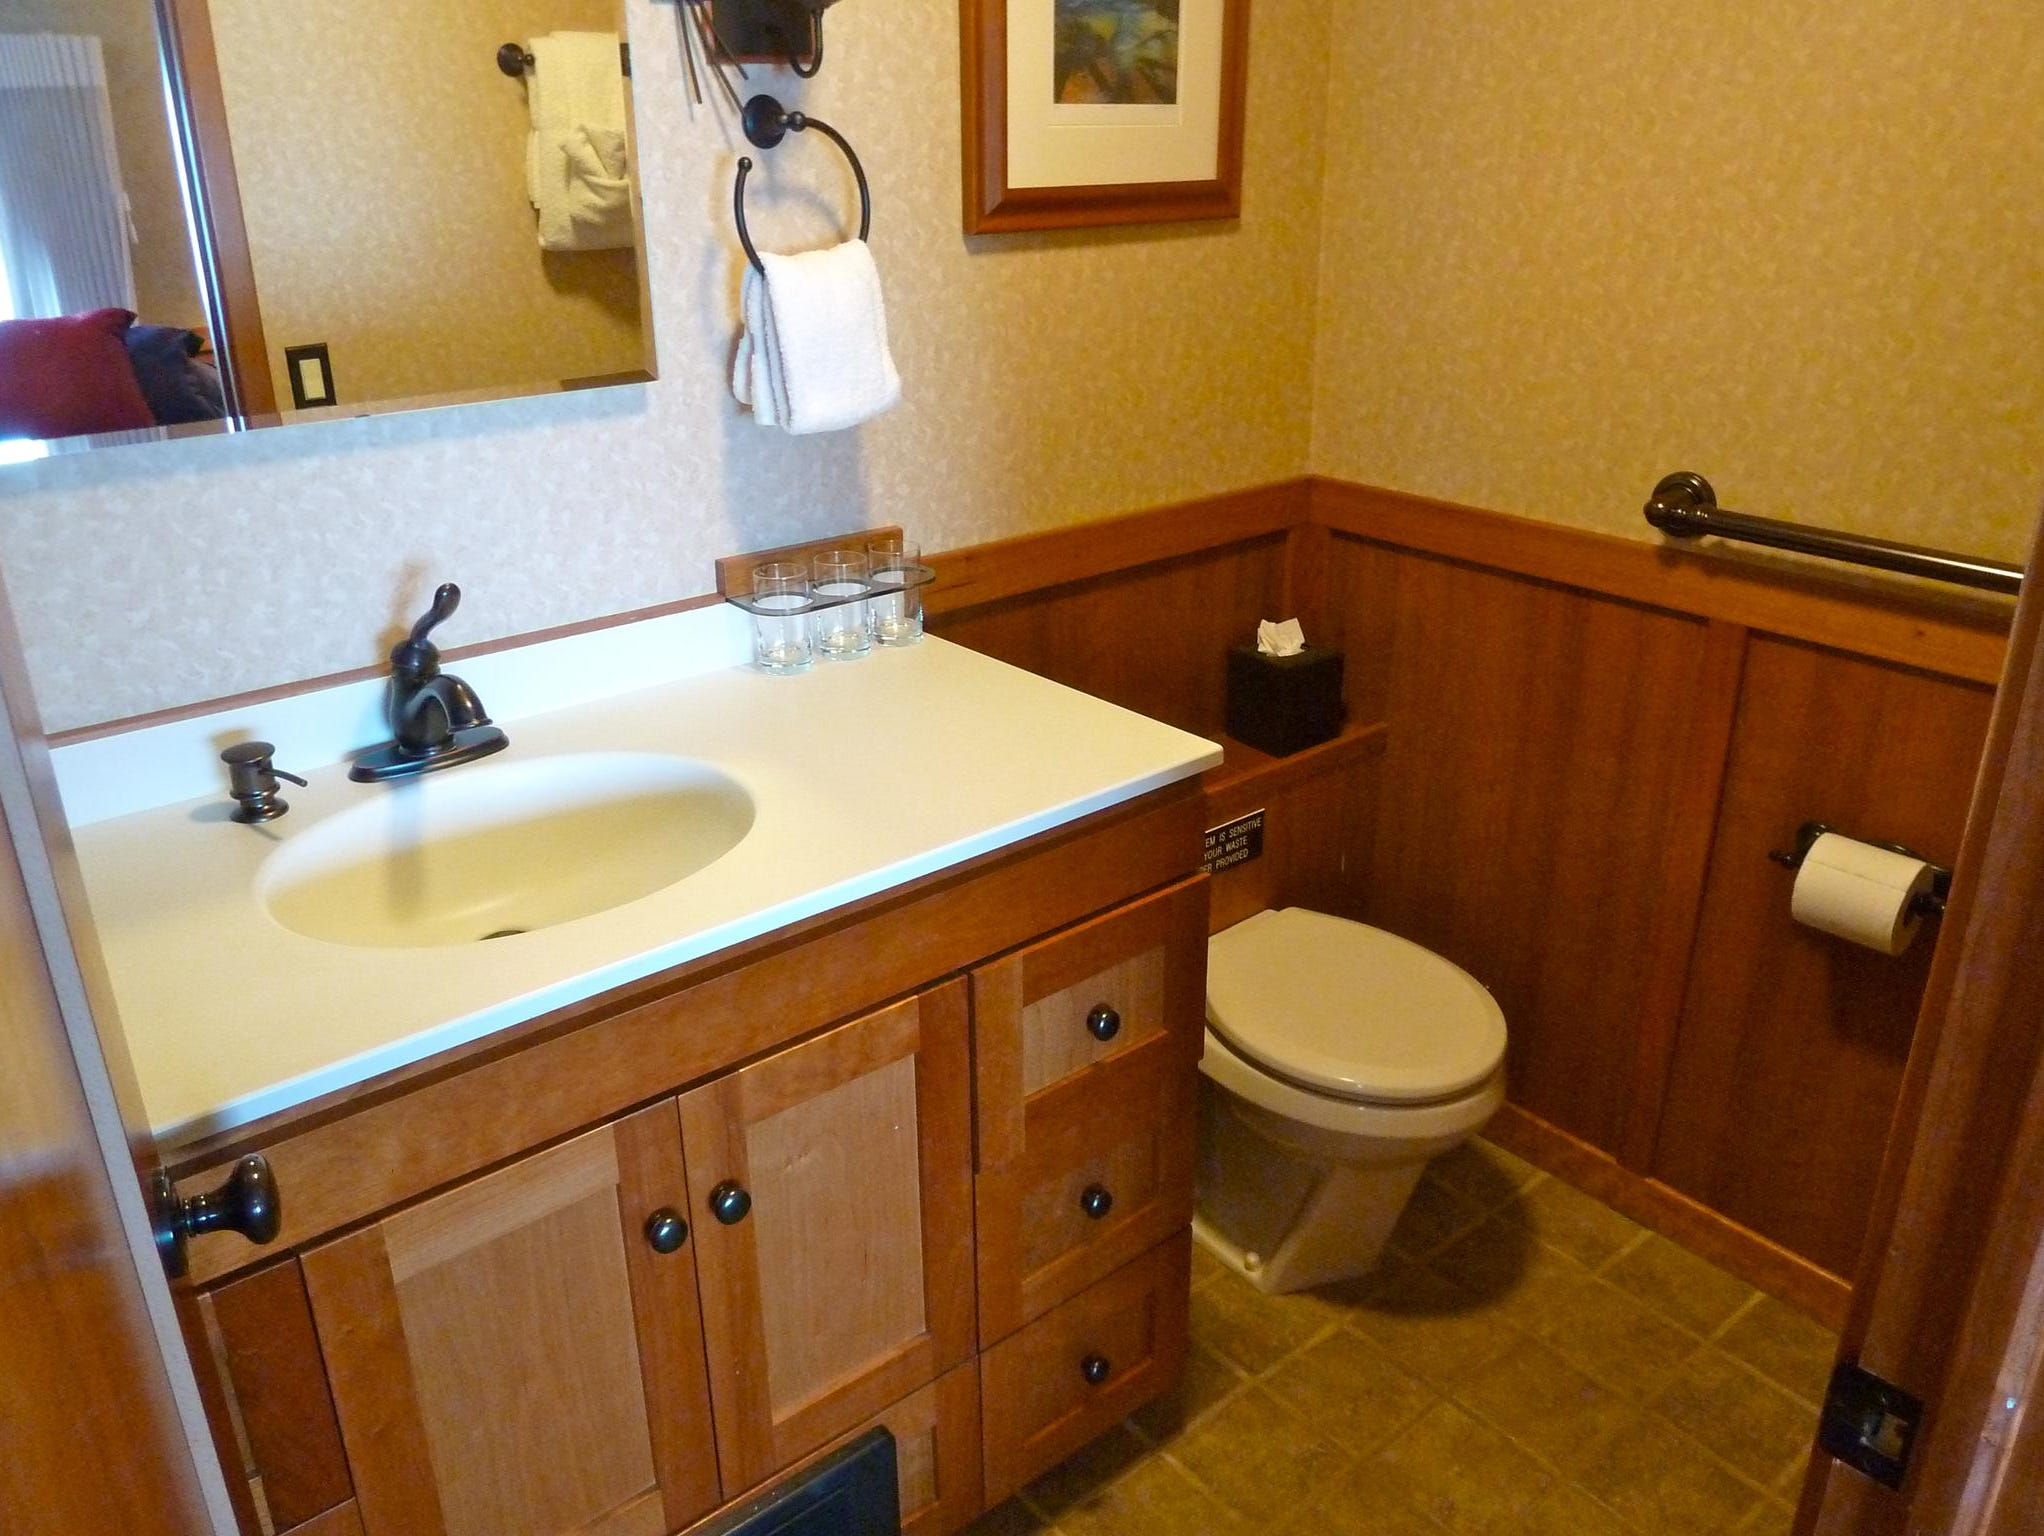 Commodore Suite bathrooms are especially large and fitted with Jacuzzi tubs. All accommodation on the Safari Explorer features bathrooms with heated tile floors.